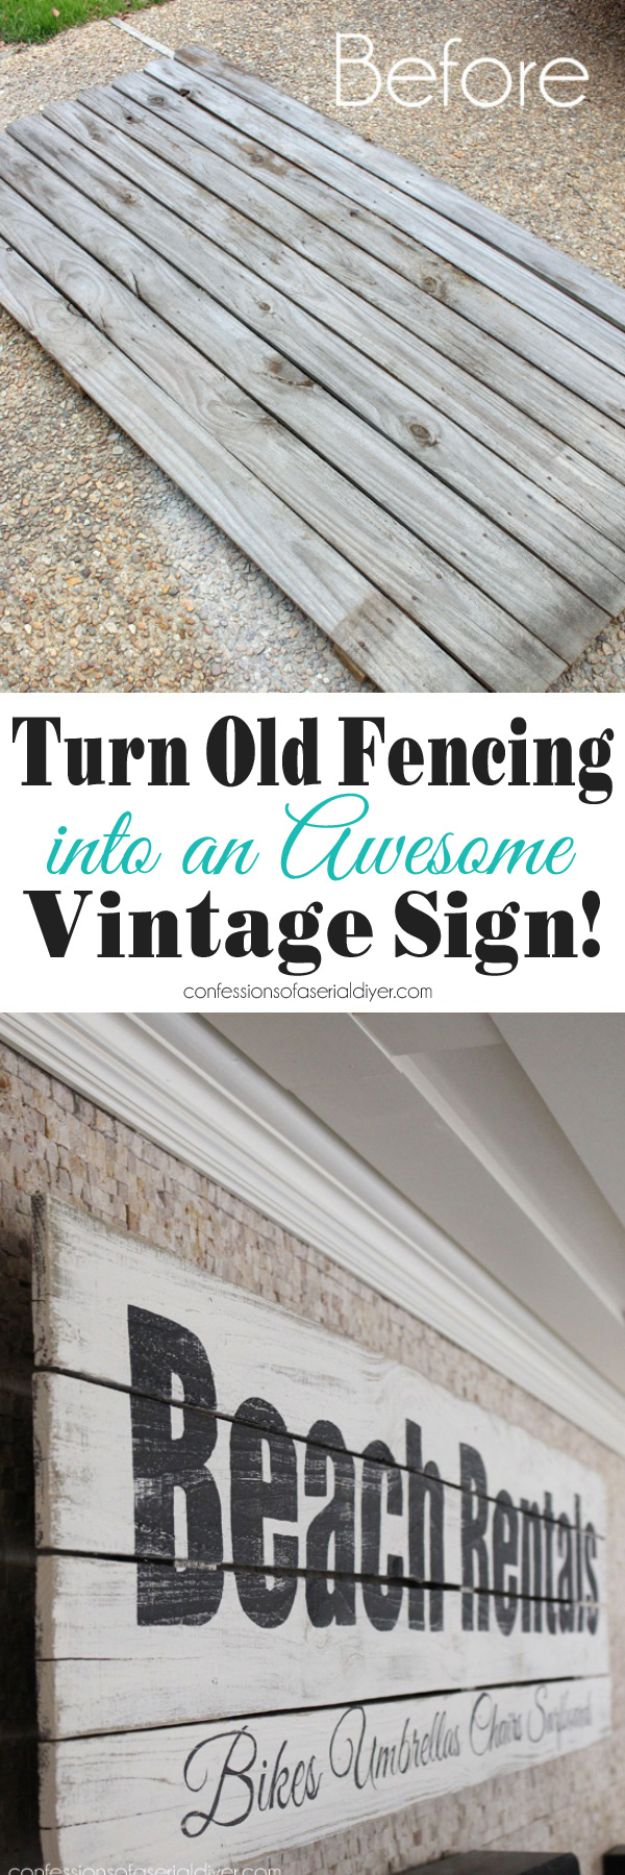 DIY Vintage Signs - Turn An Old Fence into A Vintage Sign - Rustic, Vintage Sign Projects to Make At Home - Creative Home Decor on a Budget and Cheap Crafts for Living Room, Bedroom and Kitchen - Paint Letters, Transfer to Wood, Aged Finishes and Fun Word Stencils and Easy Ideas for Farmhouse Wall Art http://diyjoy.com/diy-vintage-signs